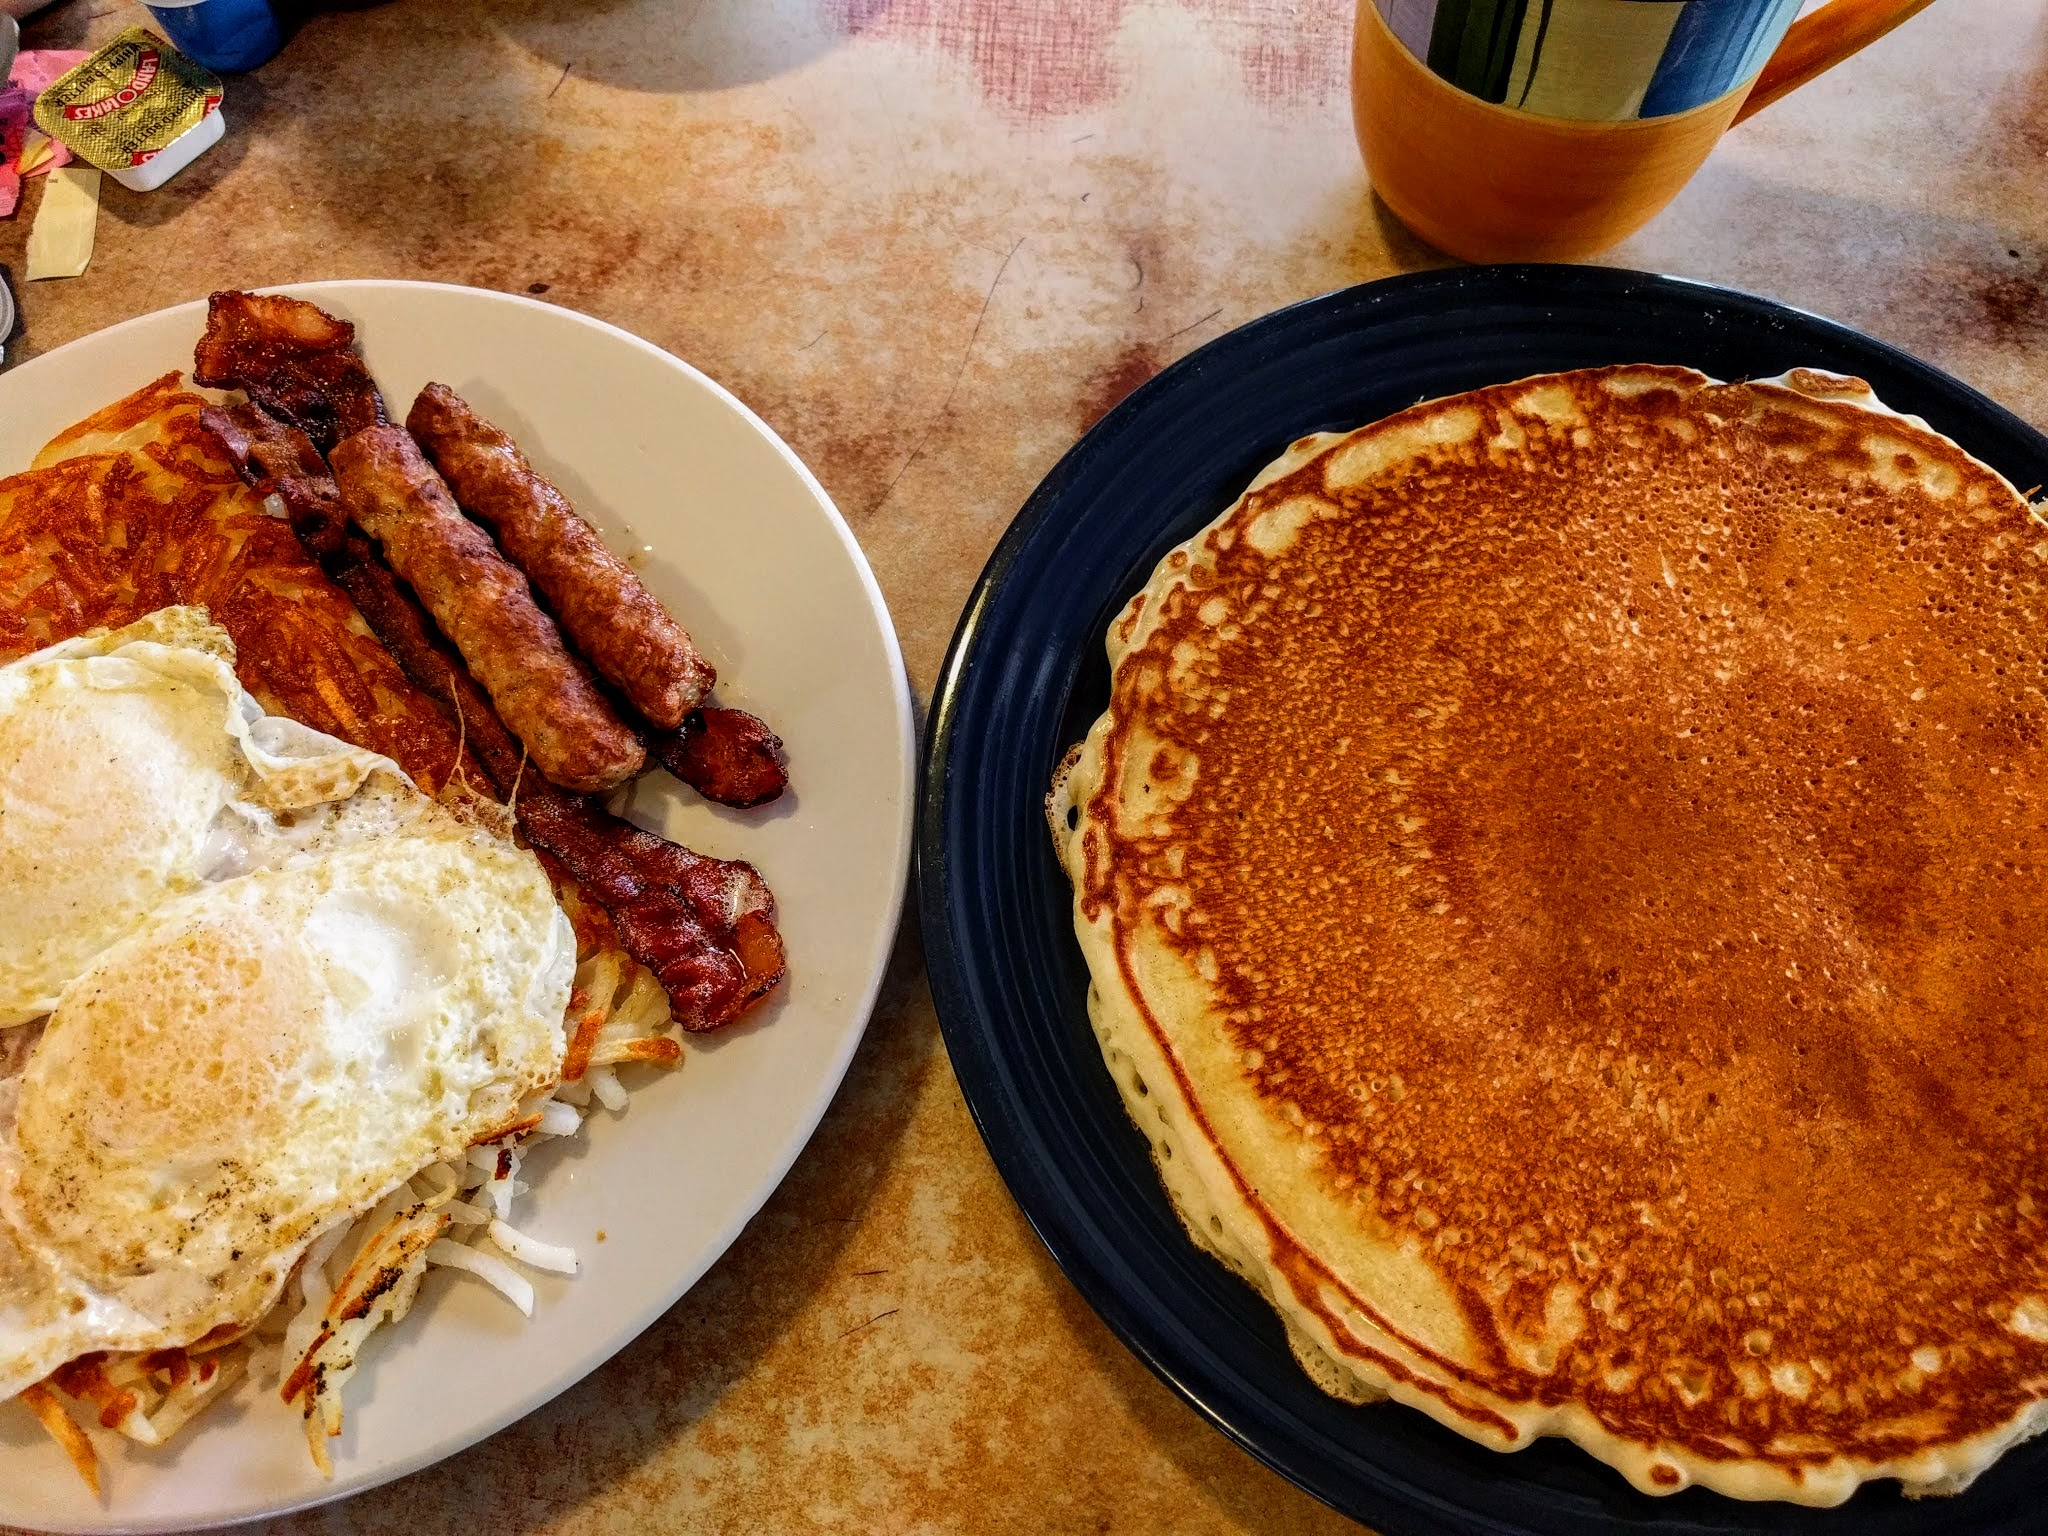 A breakfast spread of pancakes, eggs and sausage at Jim-Denny' in Sacramento